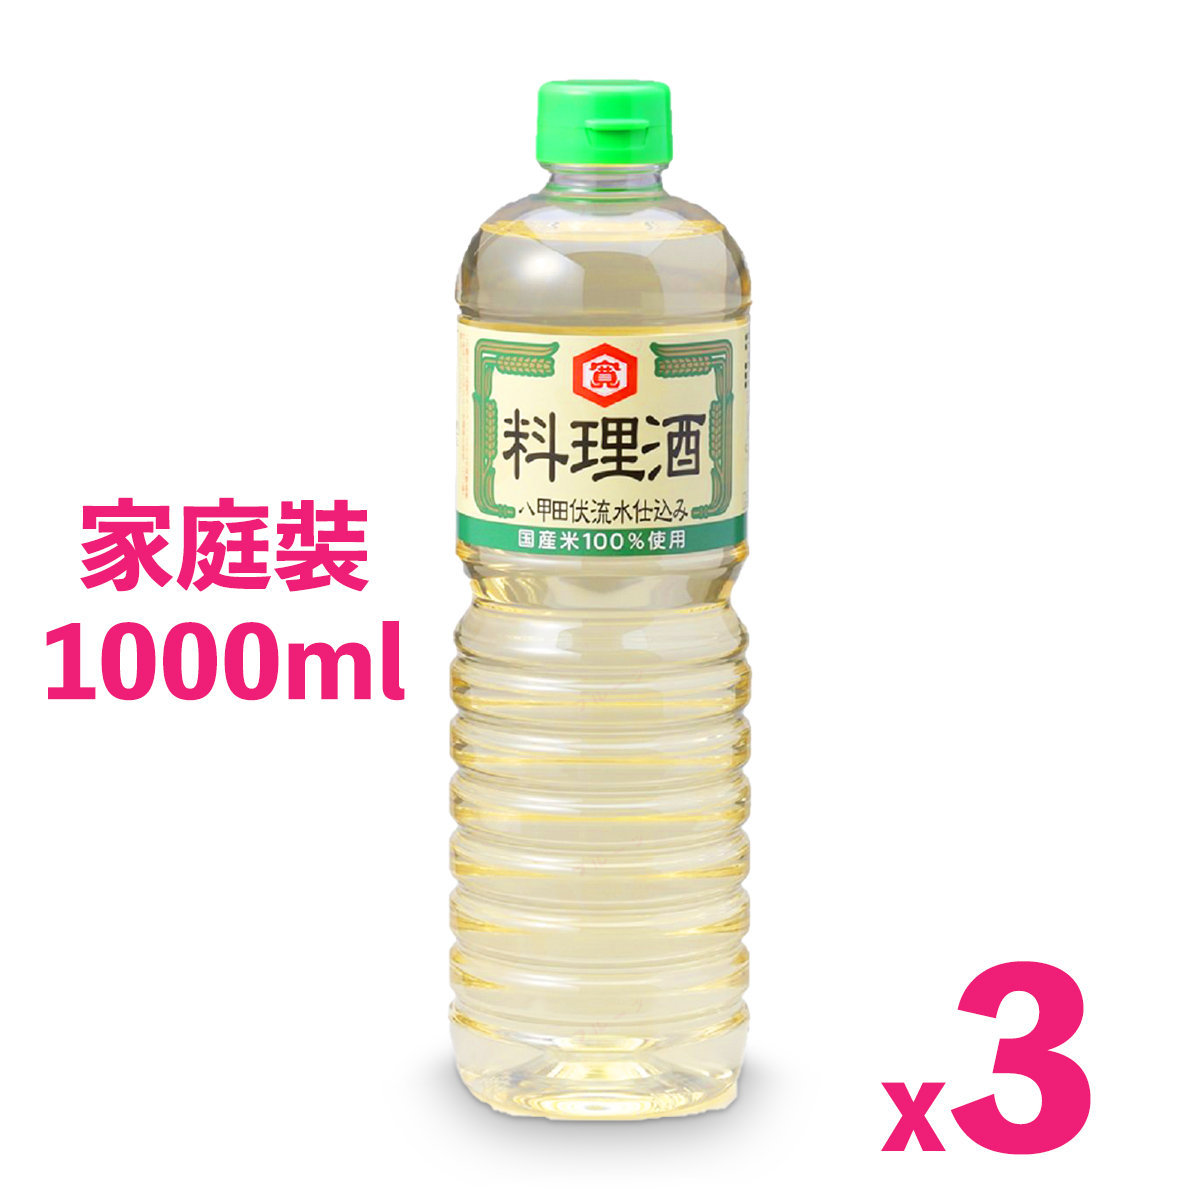 Japanese Cooking Wine (1L) x 3bottles